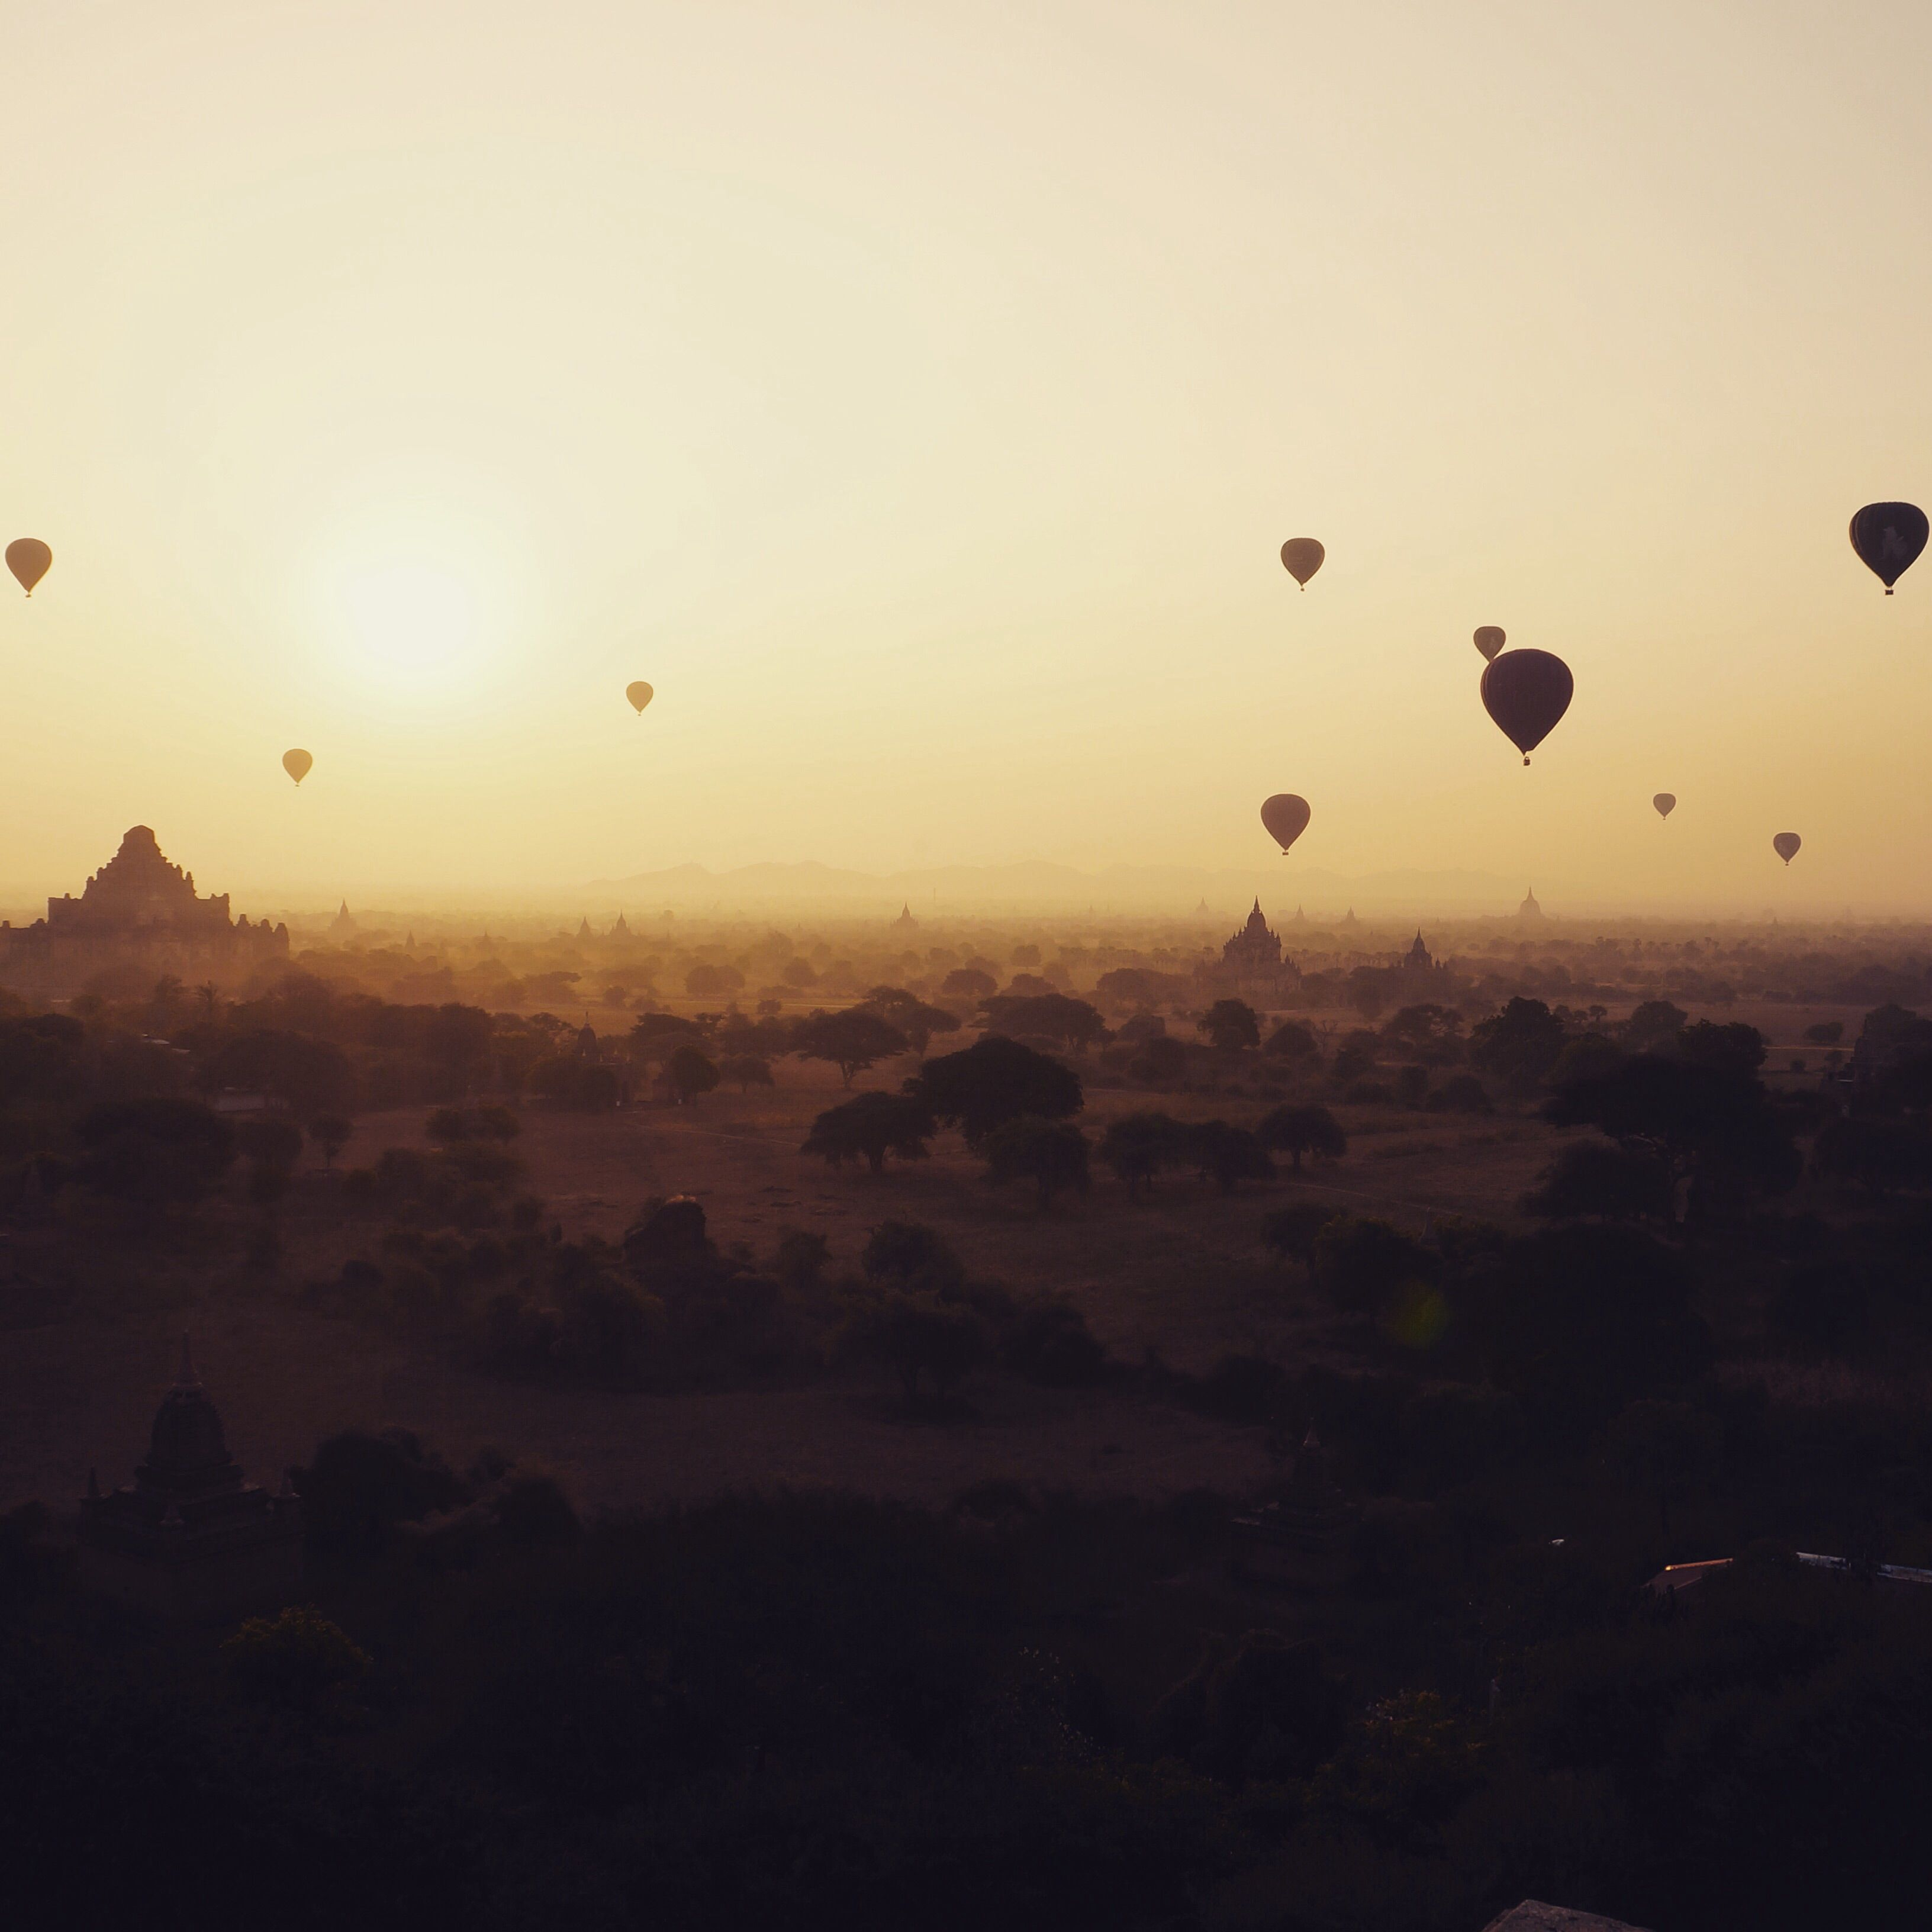 Bagan, Myanmar - Follow our travels at http://www.briefcasetobackpacks.com/travel-blog